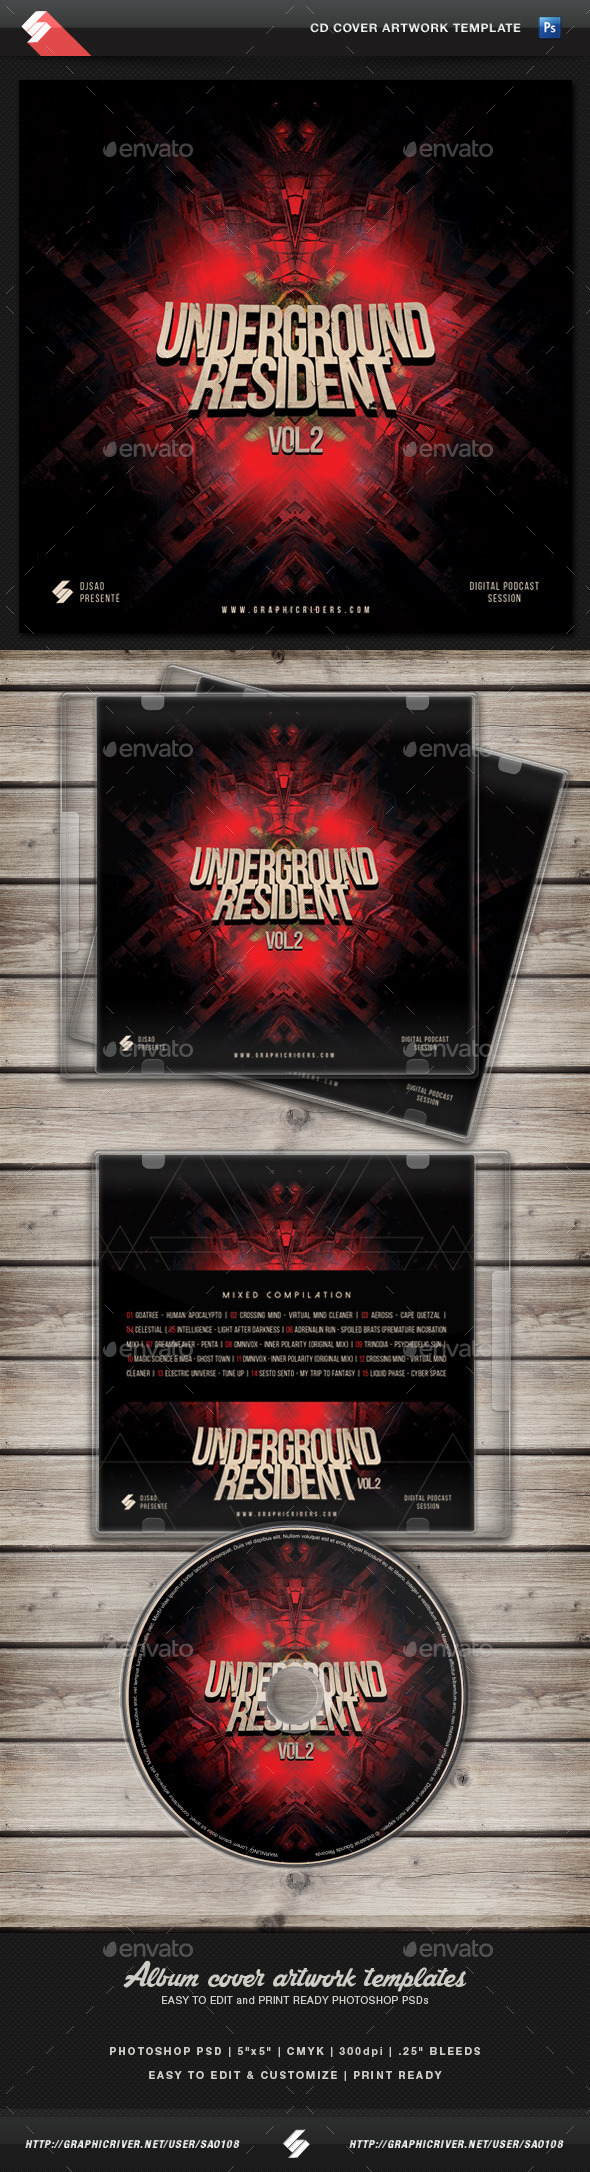 GraphicRiver Underground Resident Vol.2 CD Cover Template 11388673